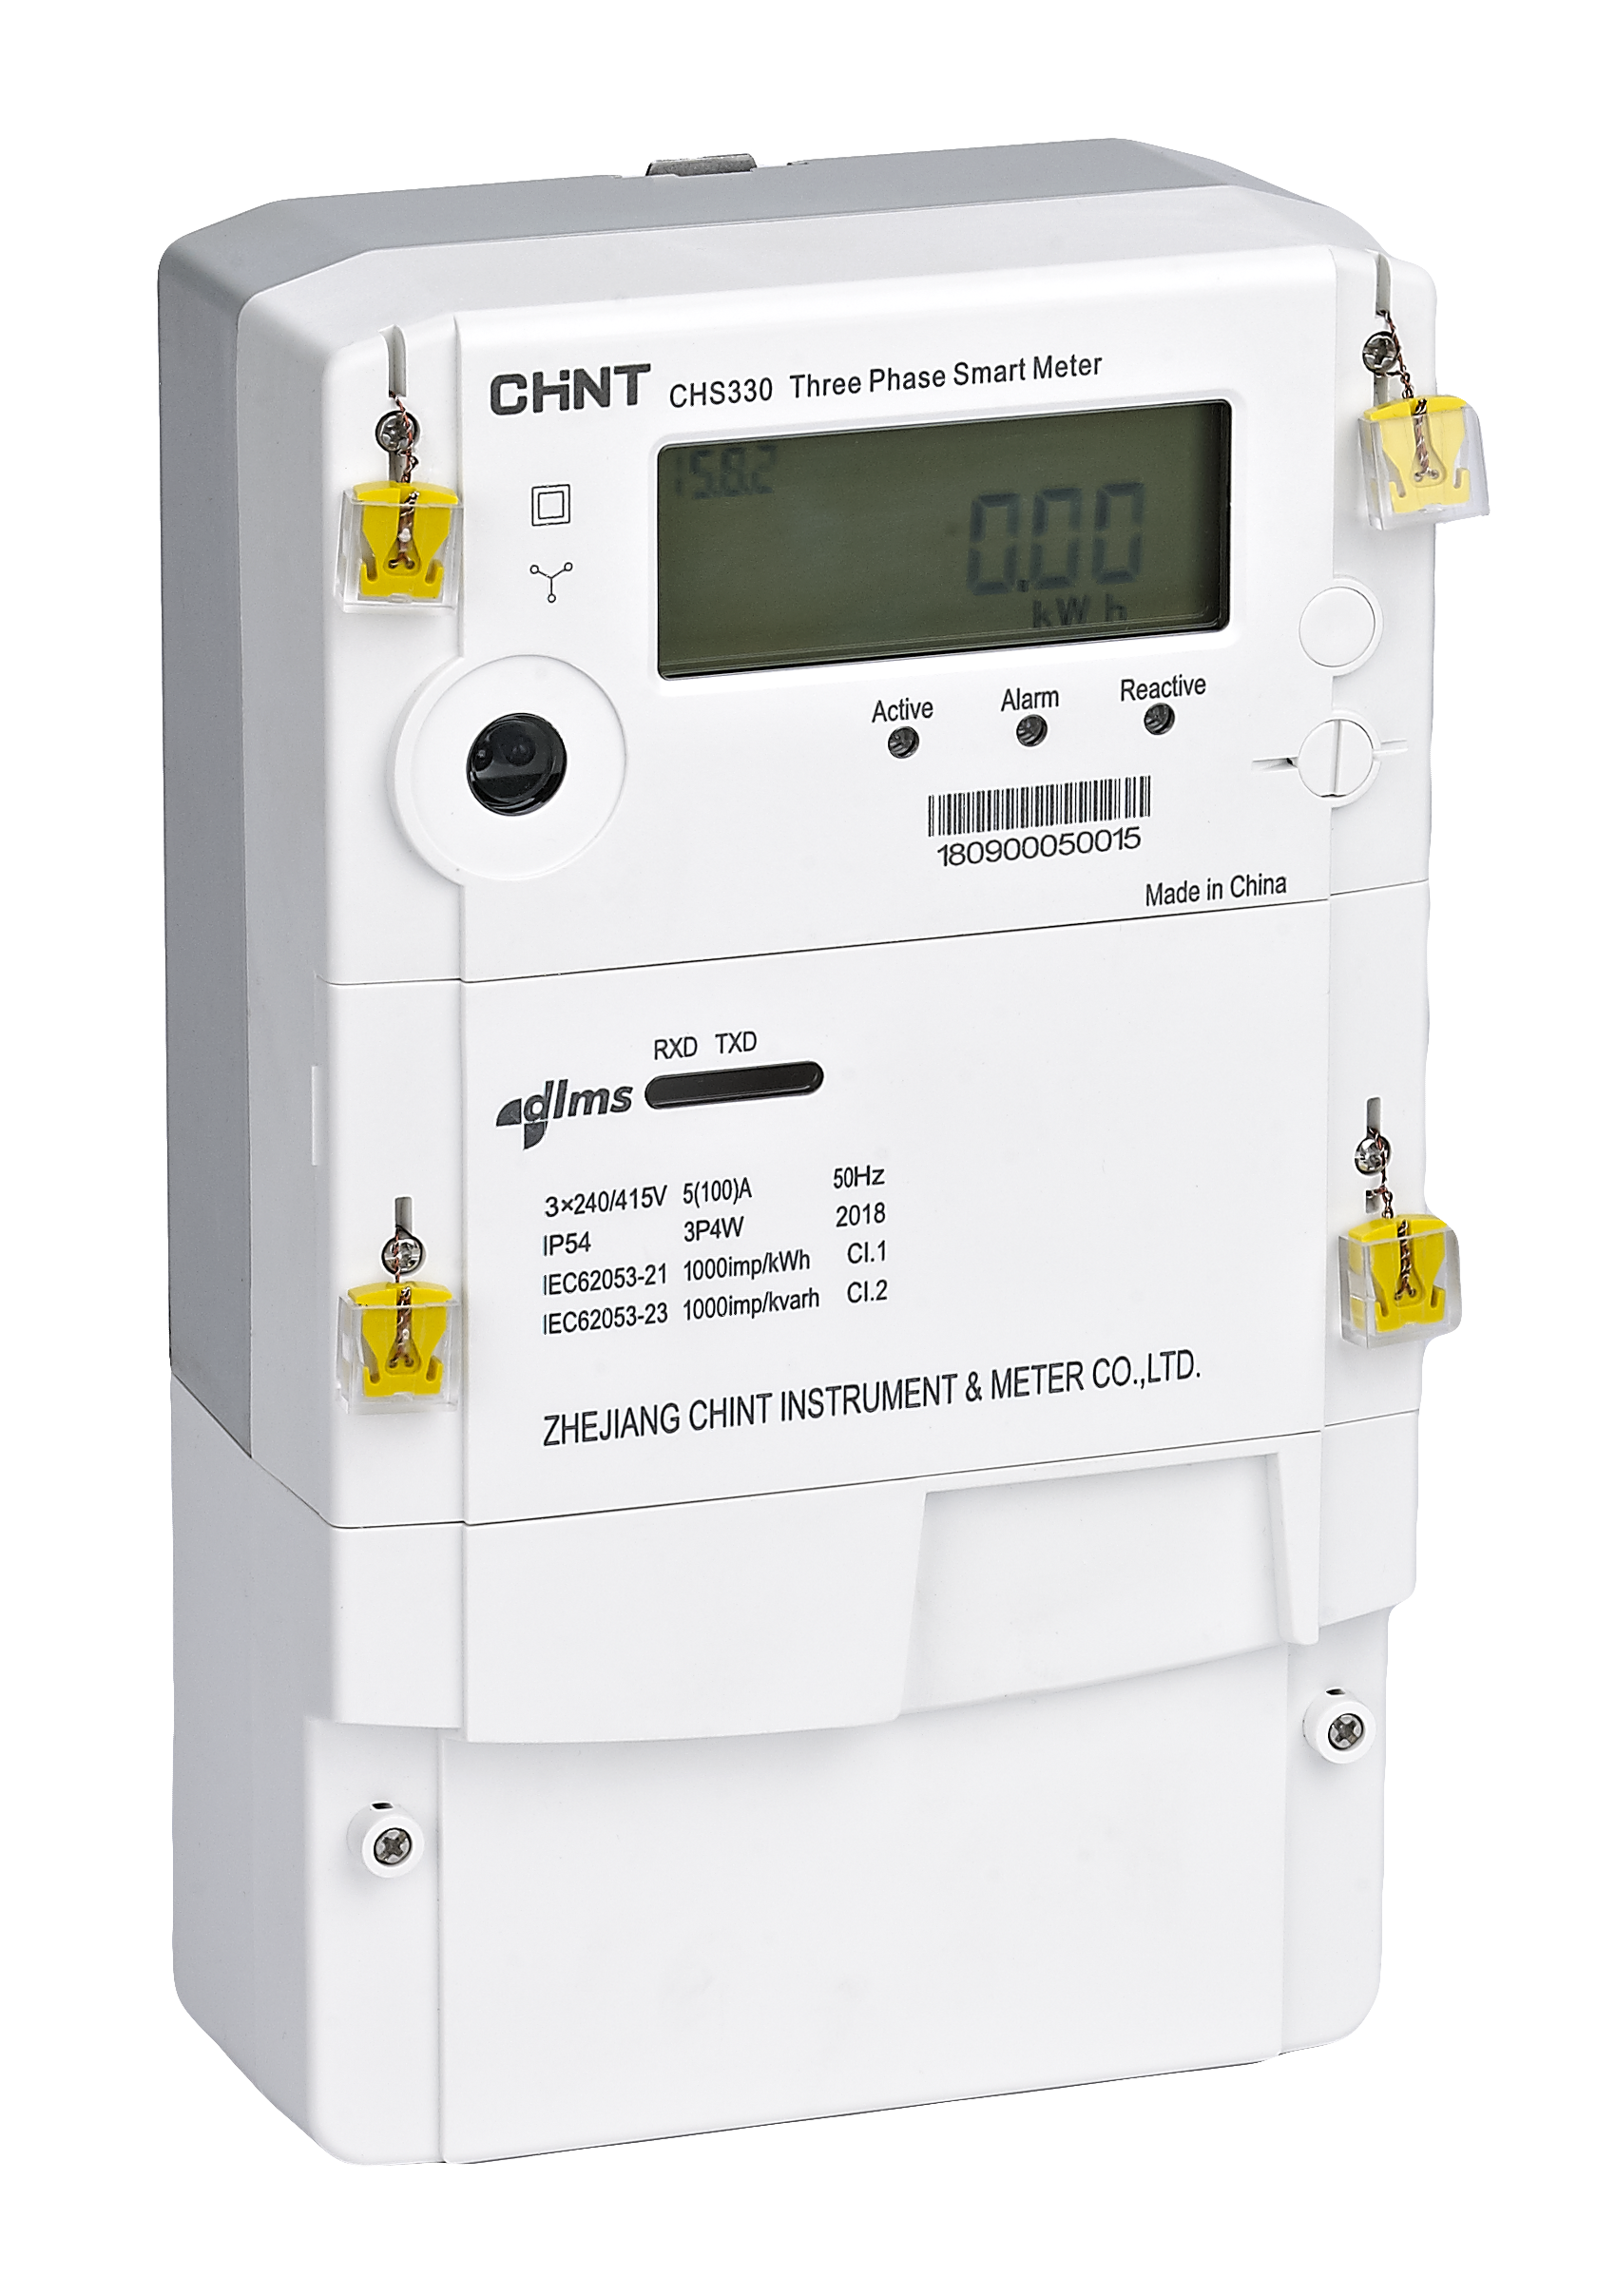 CHS330 Three Phase Smart Meter